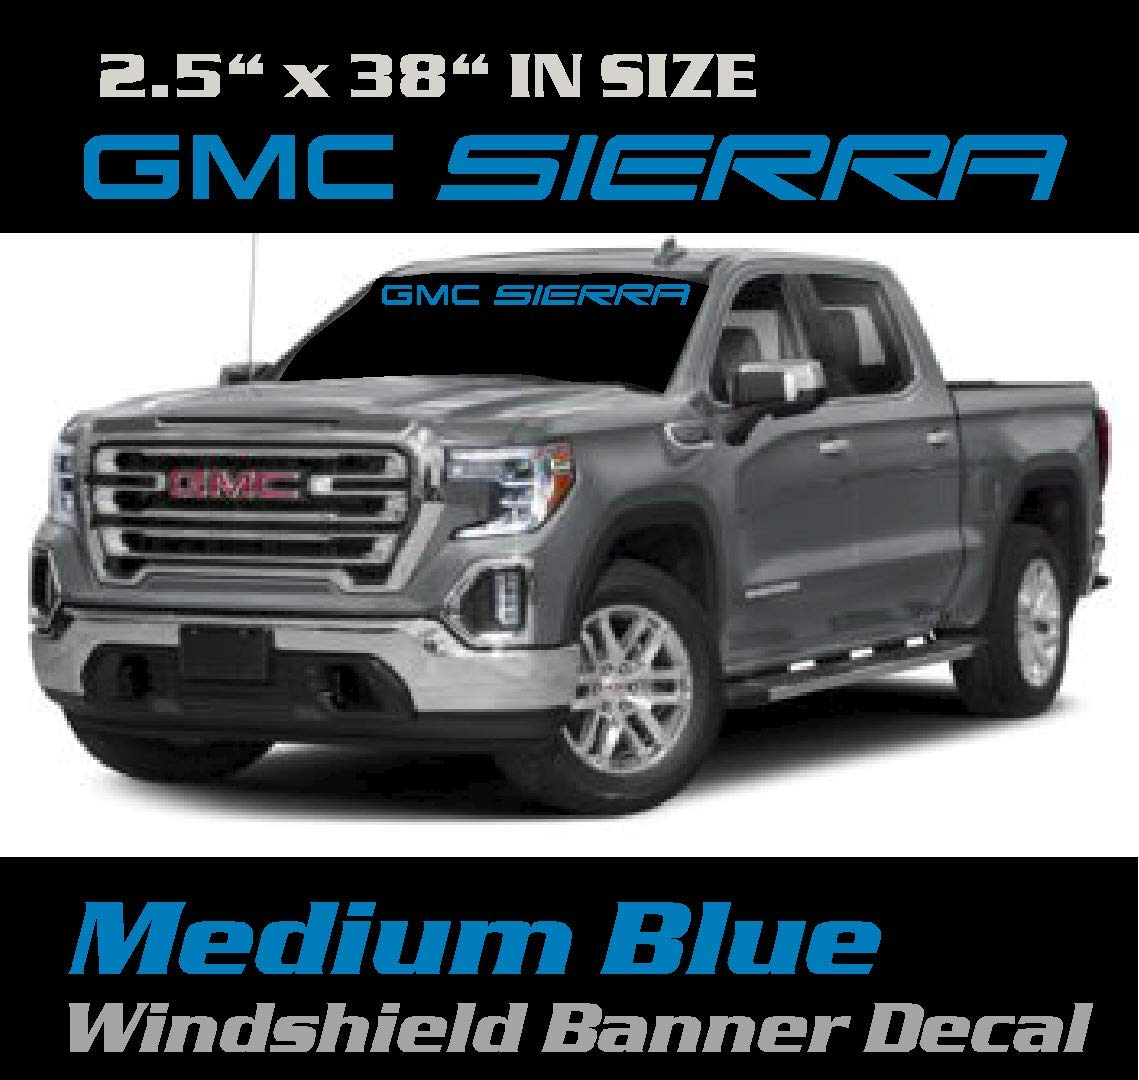 Chevy Windshield Banner. Banner Chevrolet Windshield Banner Graphic Sticker Color Medium Blue 6 to 8 Year Outdoor Life 2.5 inch by 38 inch GMC Sierra Windshield Decal